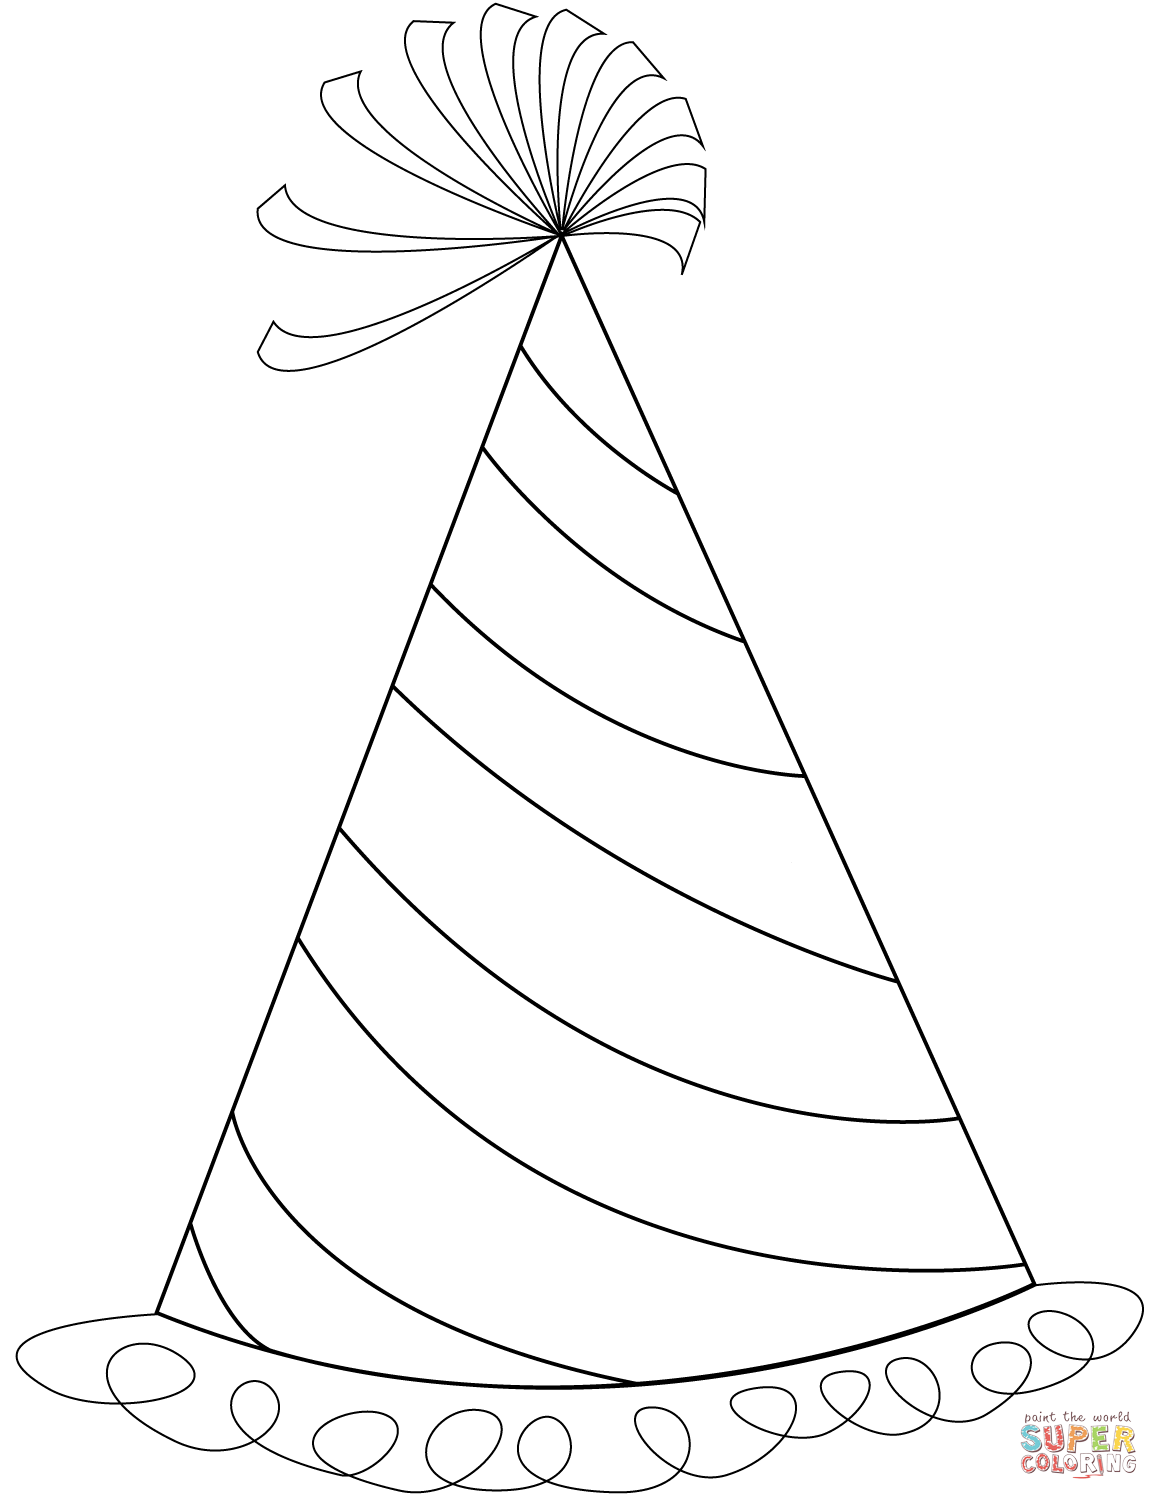 Party Hat Clipart Black And White Happy Birthday Party Hat Coloring Page Free Printable Coloring Pages